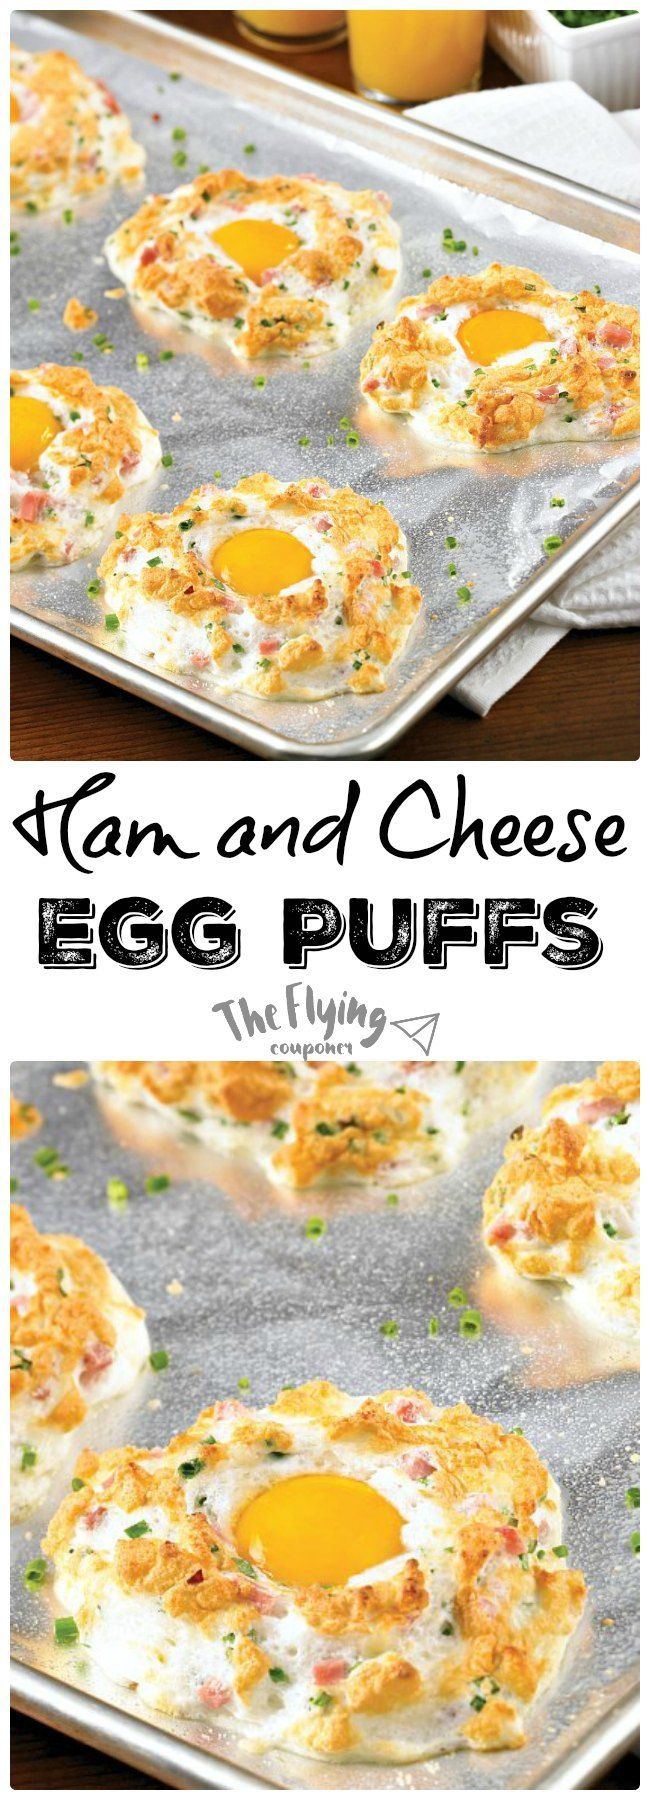 Ham and Cheese Egg Puffs. Easy and healthy breakfast recipe ideas. The Flying Couponer | Family. Travel. Saving Money.